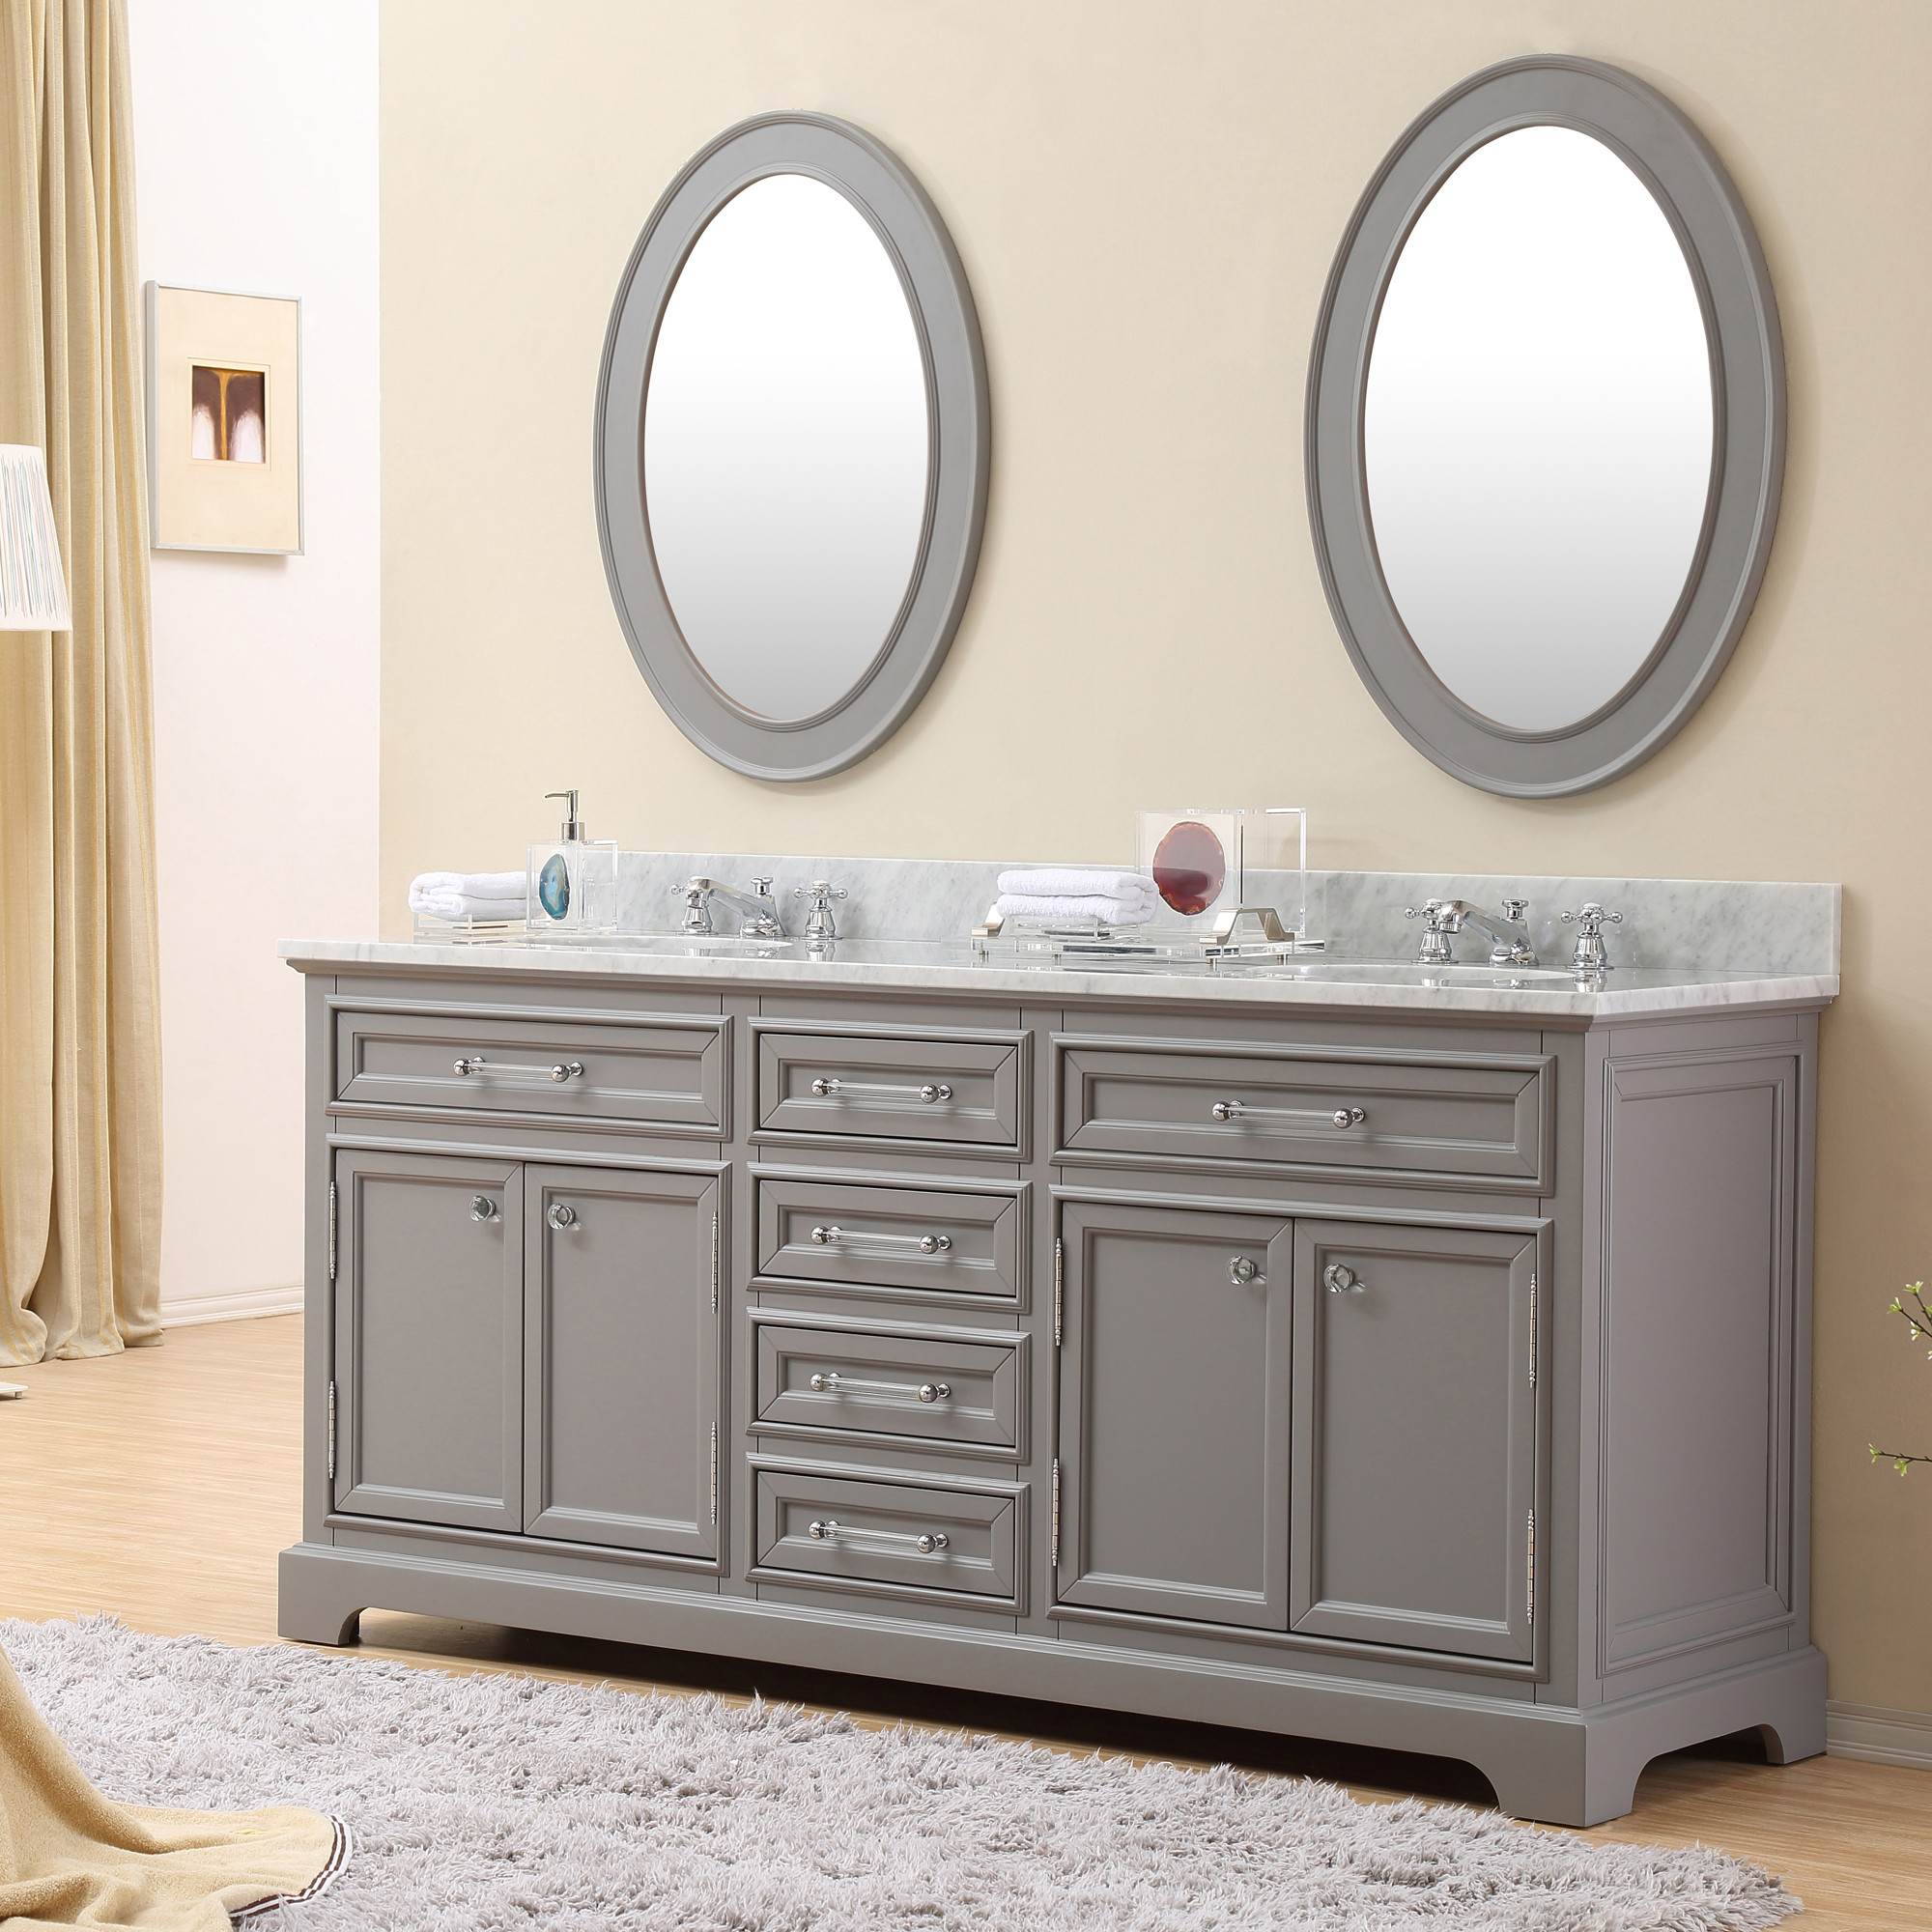 Traditional Bathroom Vanities And Cabinets 72 bathroom vanity. . galant 72 inch double sink bathroom vanity